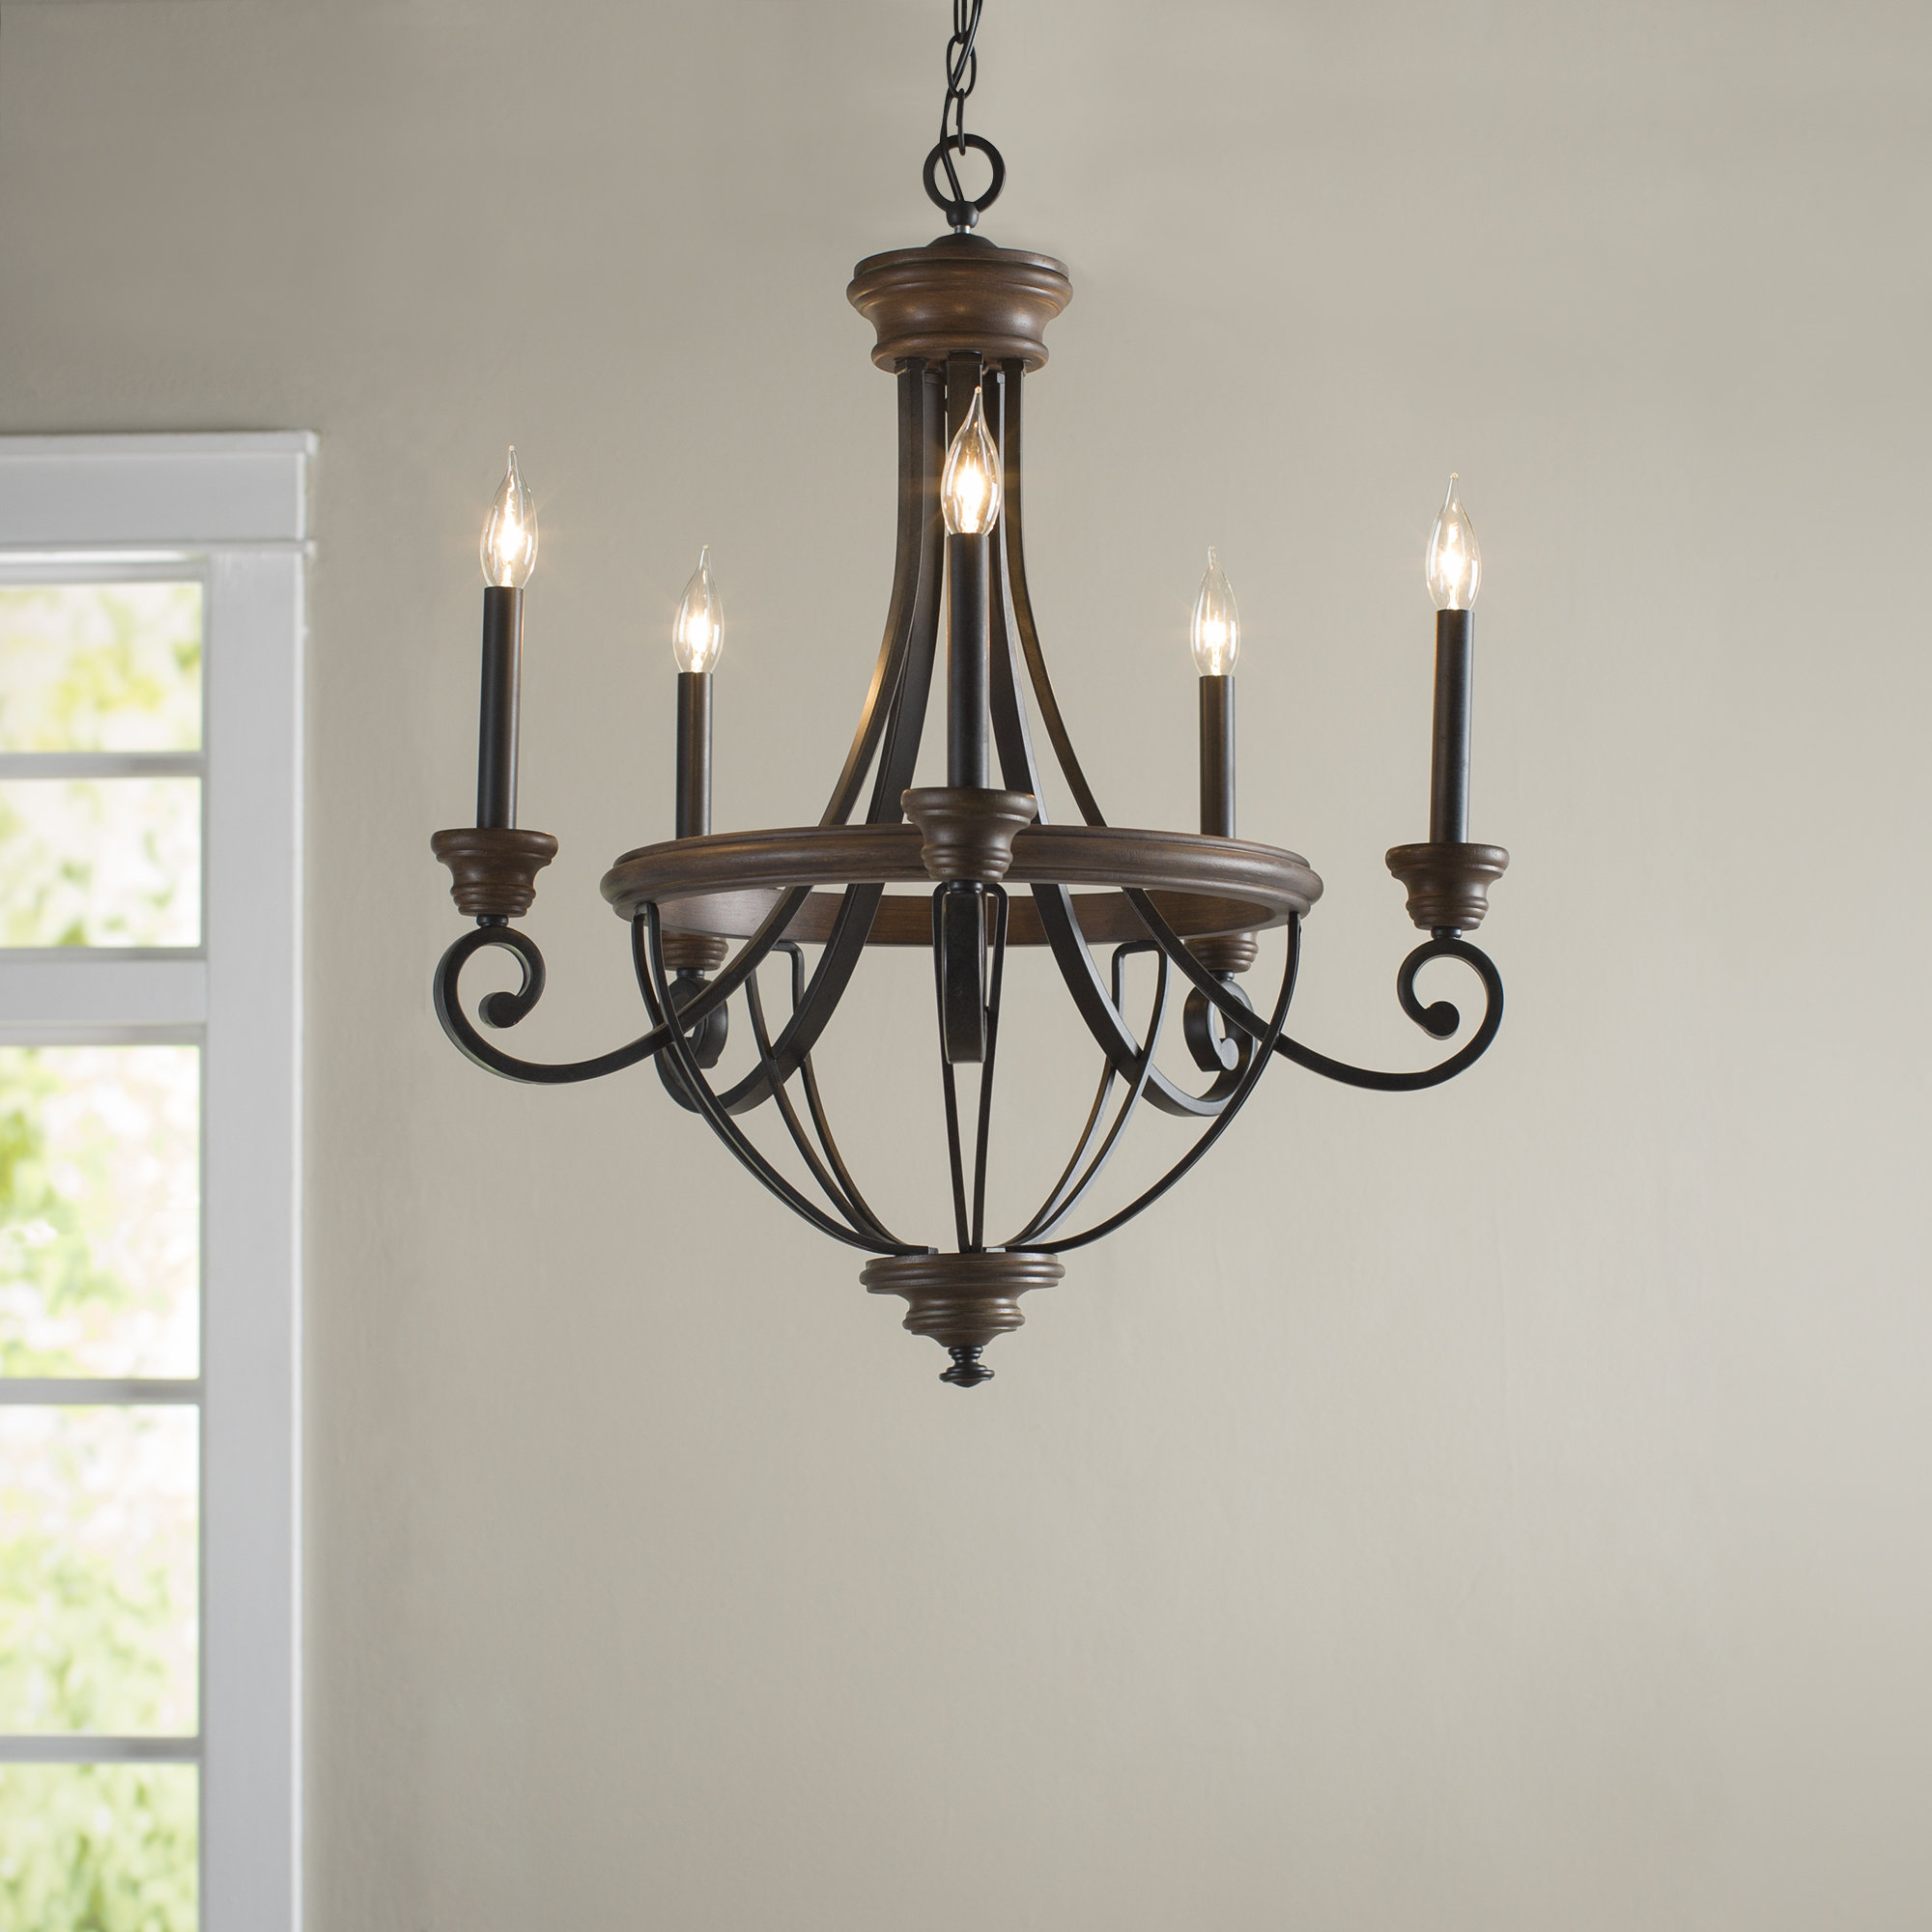 Widely Used Kenna 5 Light Empire Chandeliers Inside Laurel Foundry Modern Farmhouse Nanteuil 5 Light Empire Chandelier (View 24 of 25)